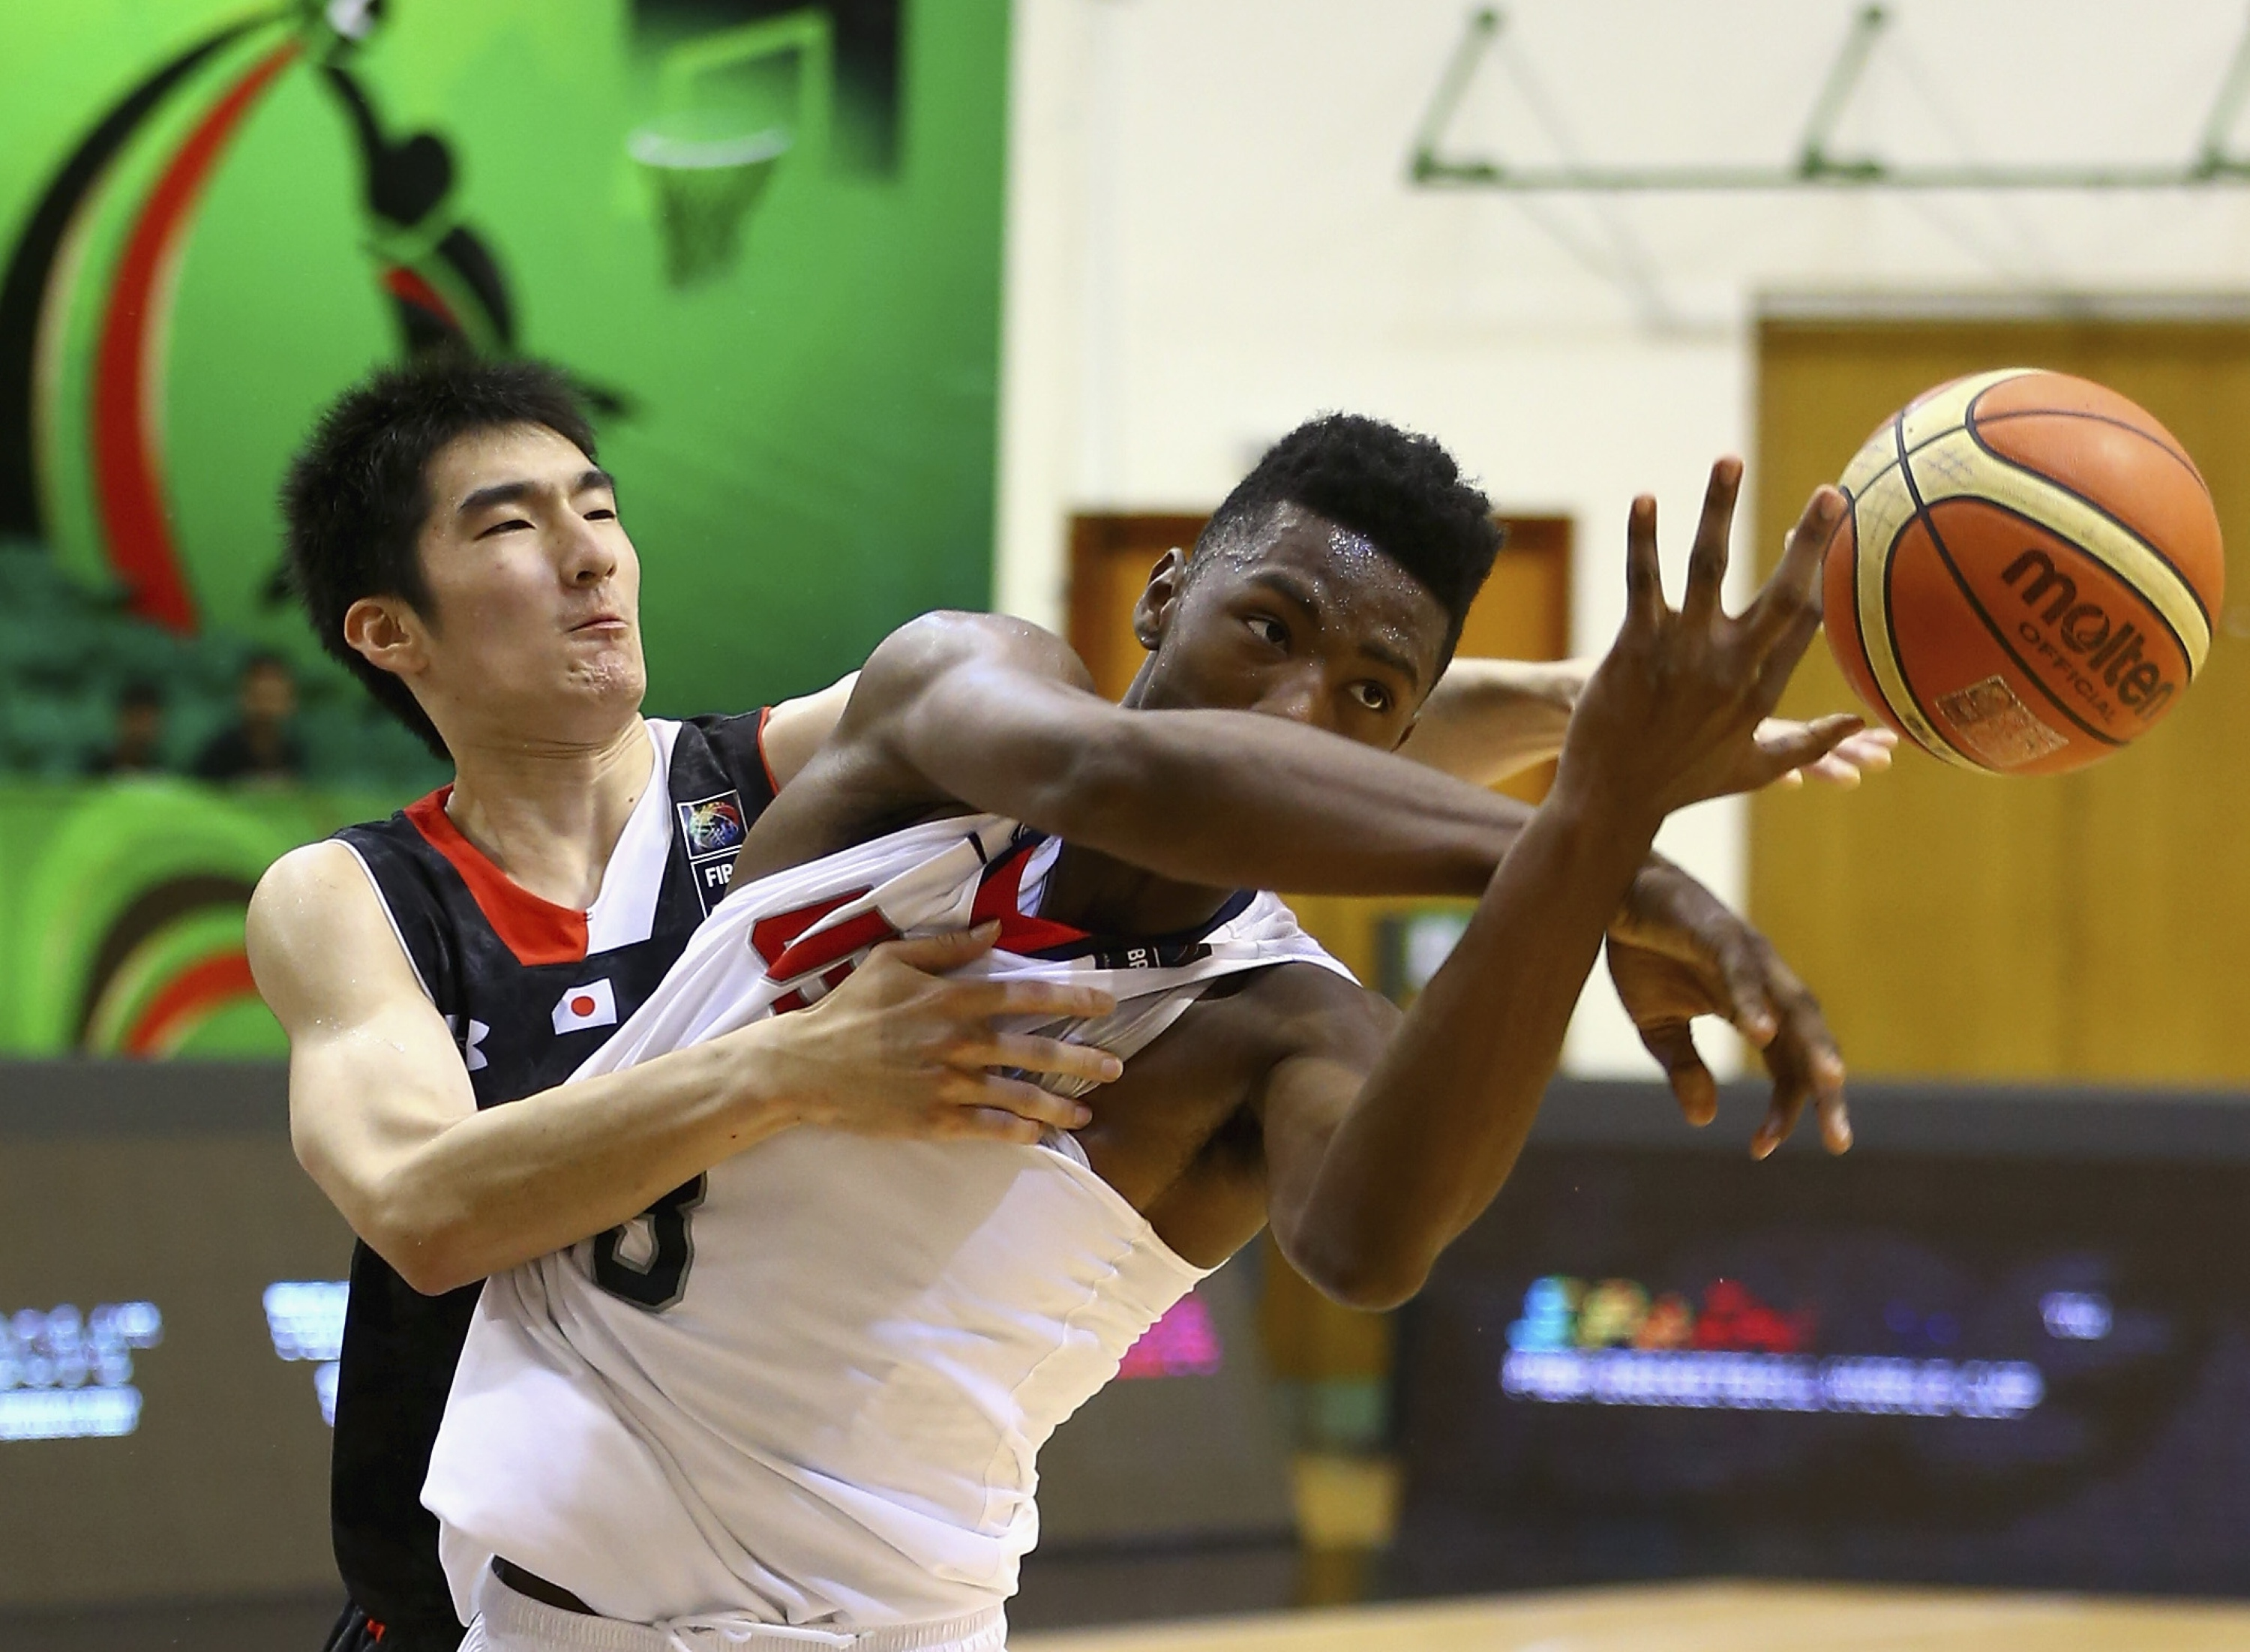 Harry Giles of the United States competes for the ball with Gen Hiraiwa of Japan (Photo by Francois Nel/Getty Images)